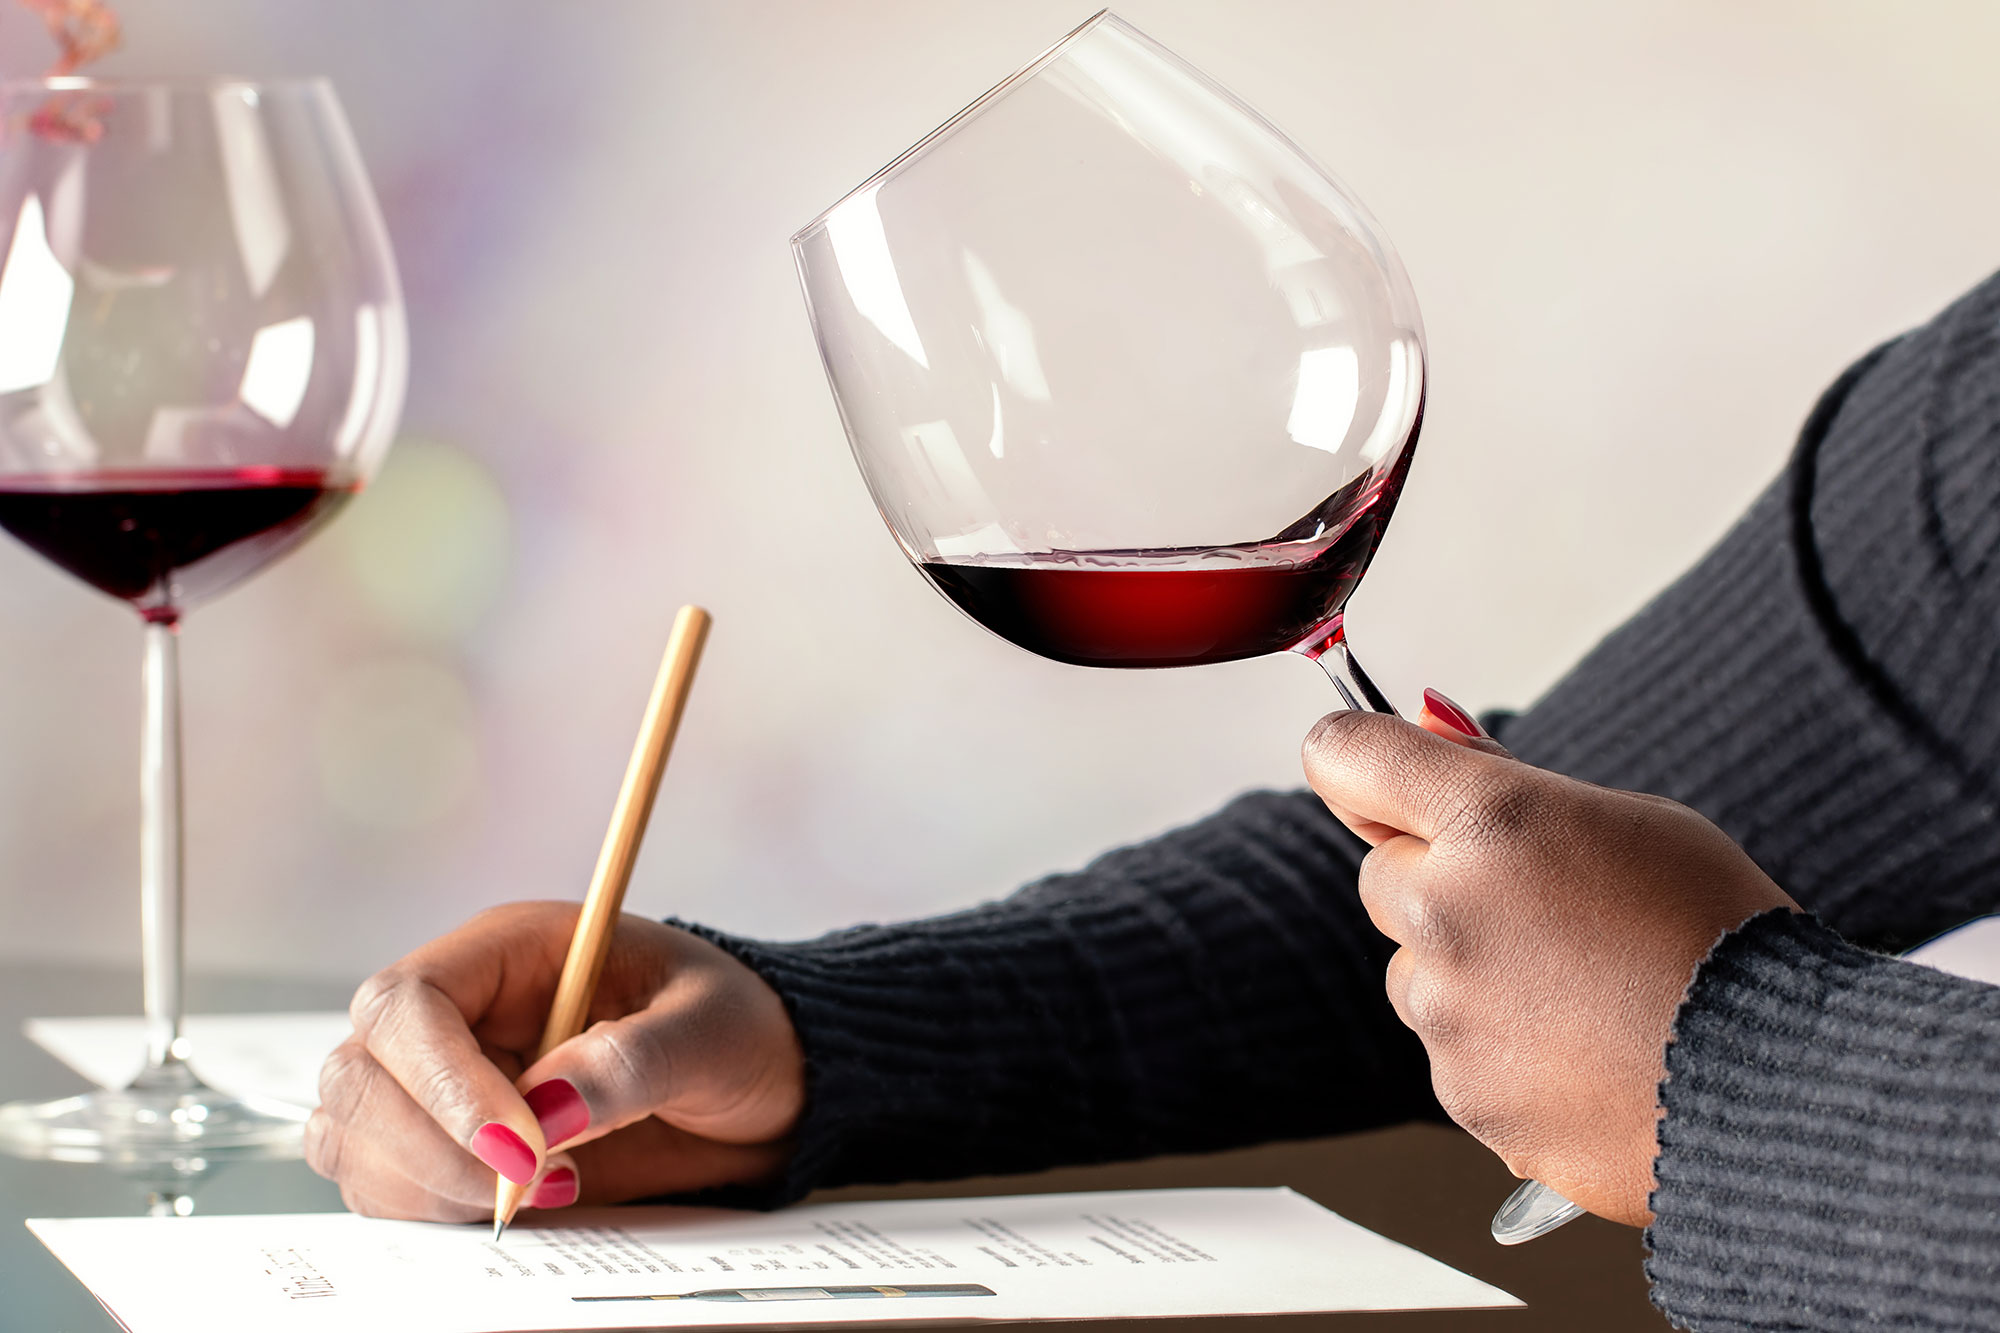 African female sommelier evaluating red wine at table.